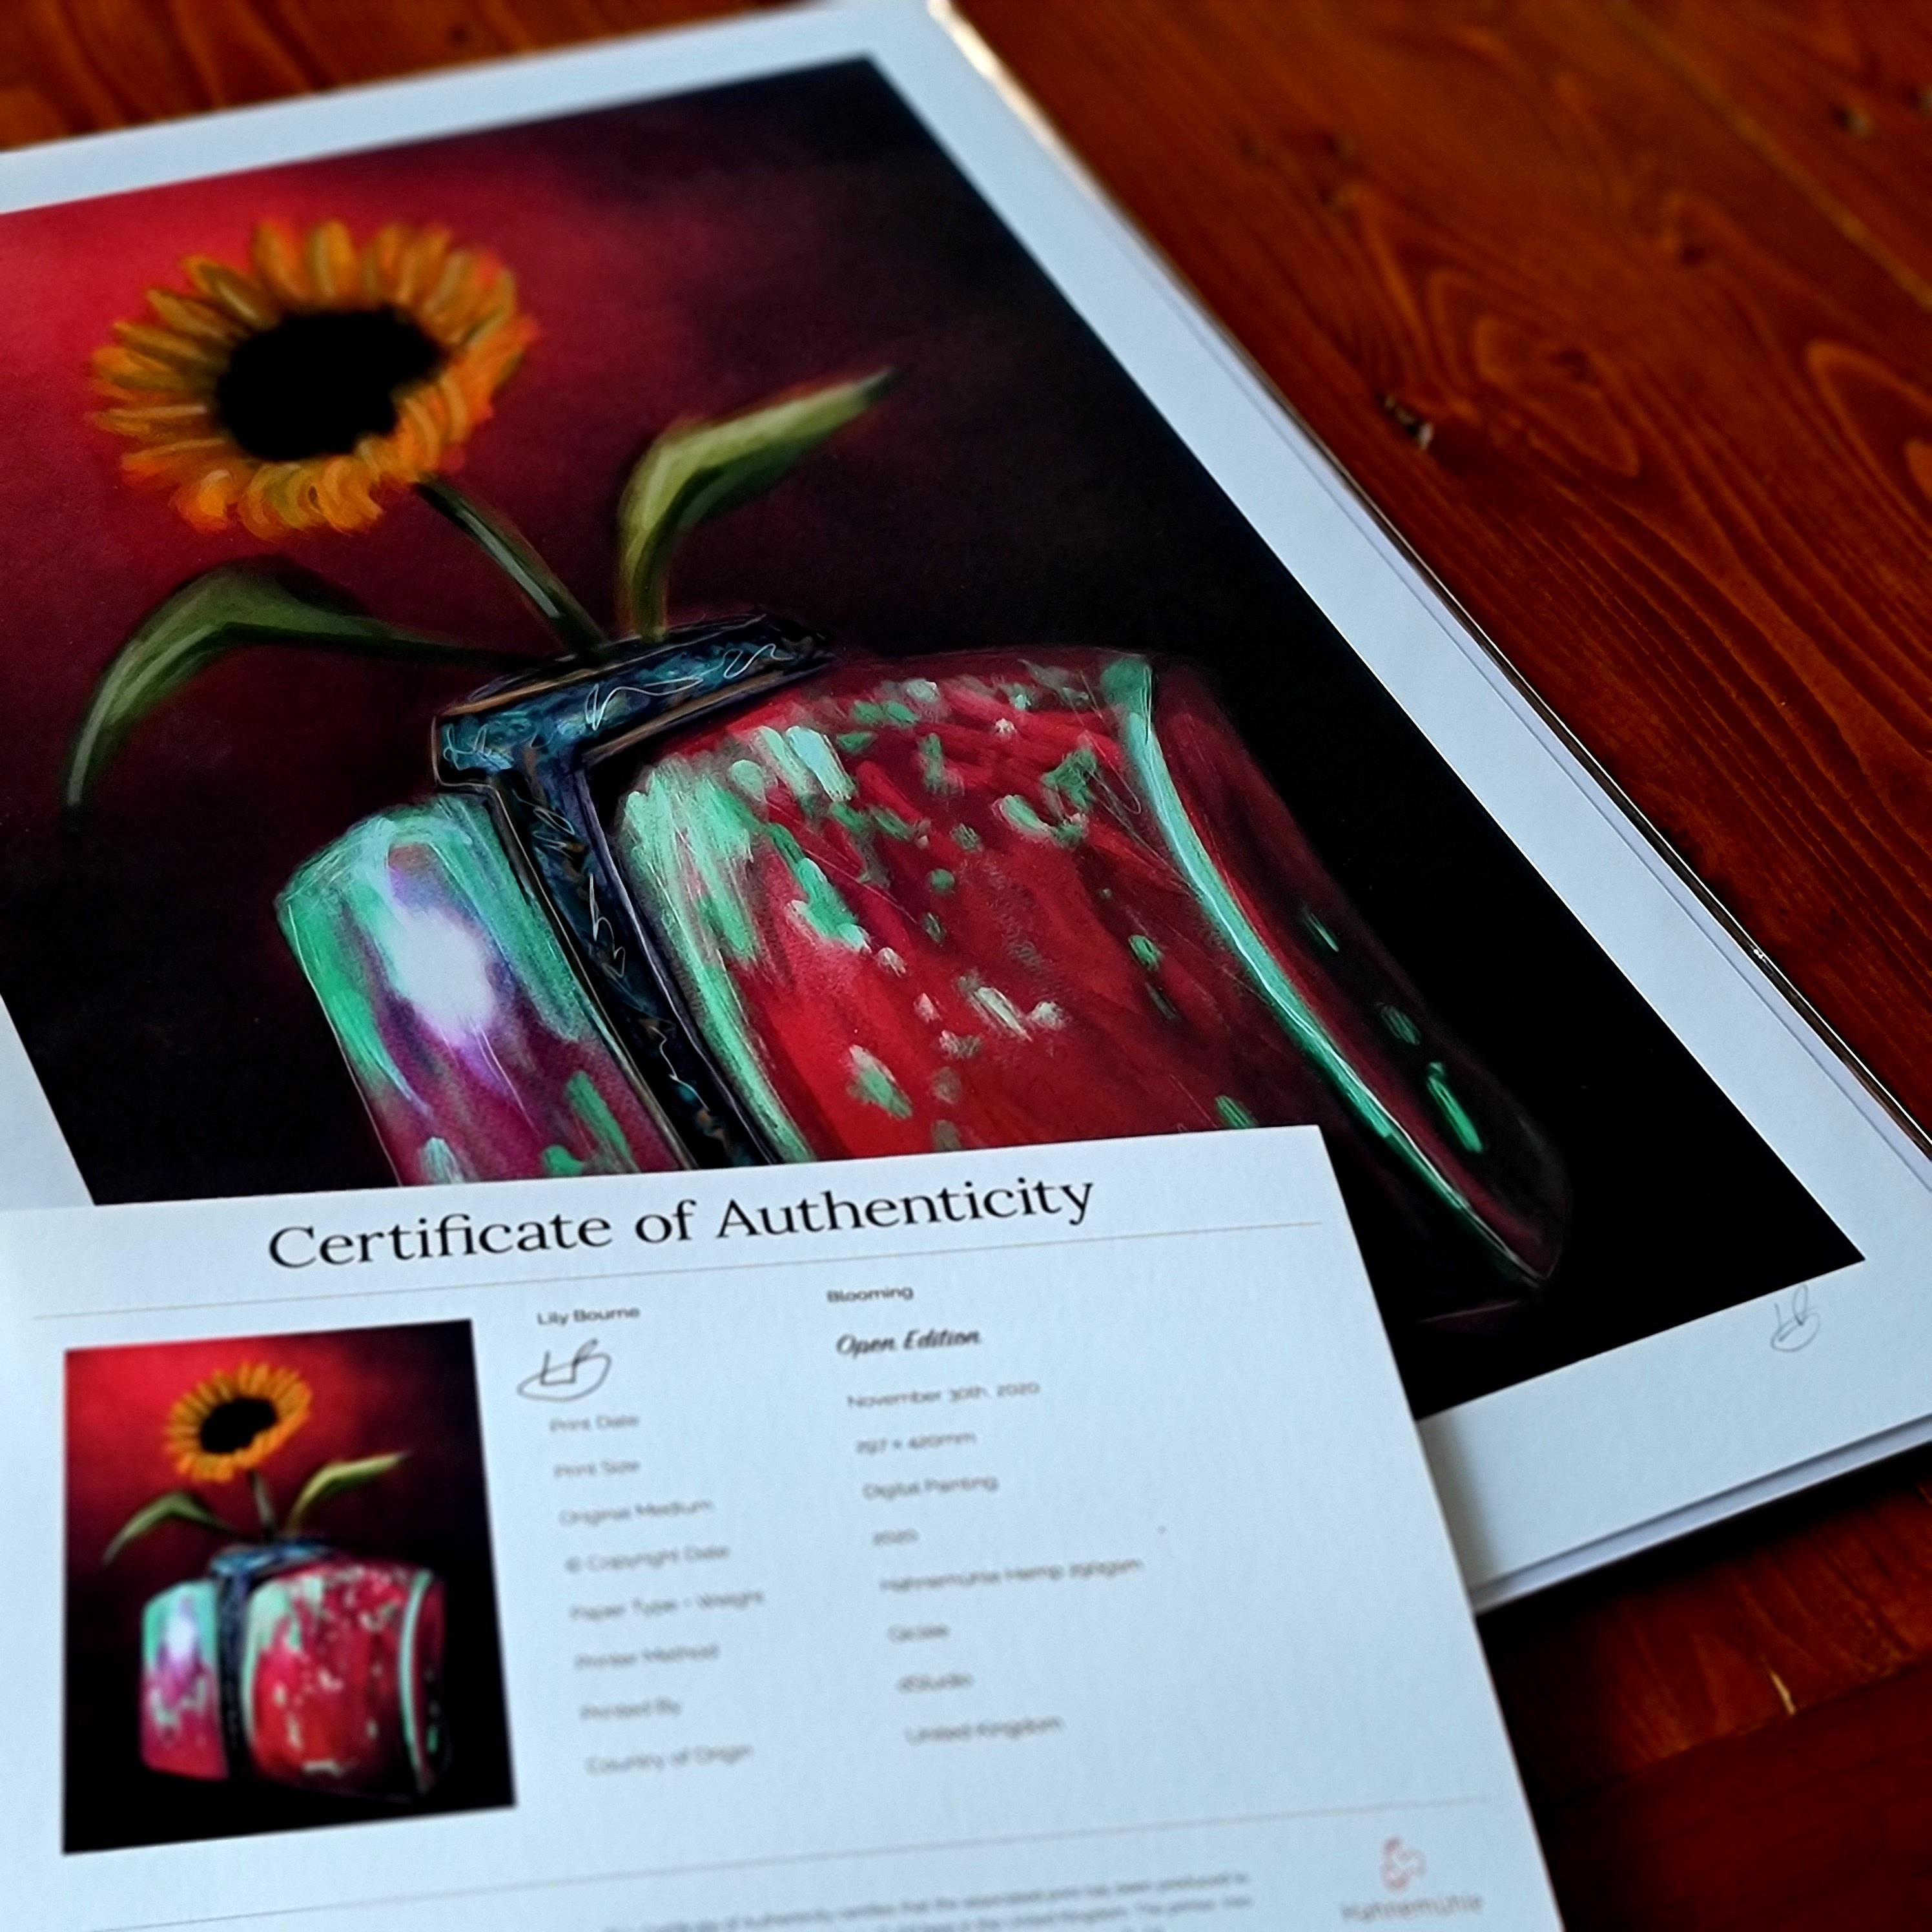 A digital painting by Lily Bourne printed on eco fine art paper titled Blooming showing a solitary sunflower in a torso shaped red and green coloured against a deep red wall. Print shown with certificate.